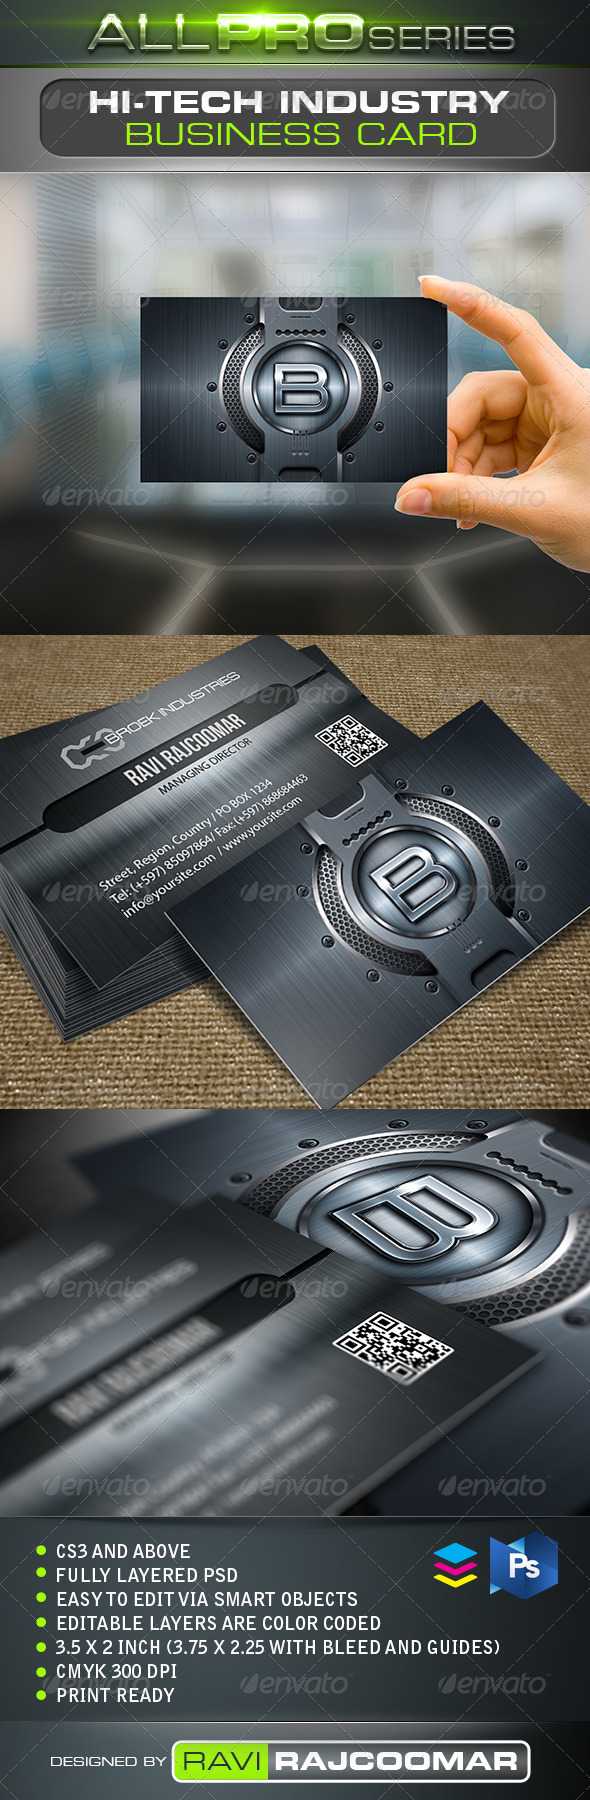 Hi-Tech Industry Business Card - Business Cards Print Templates